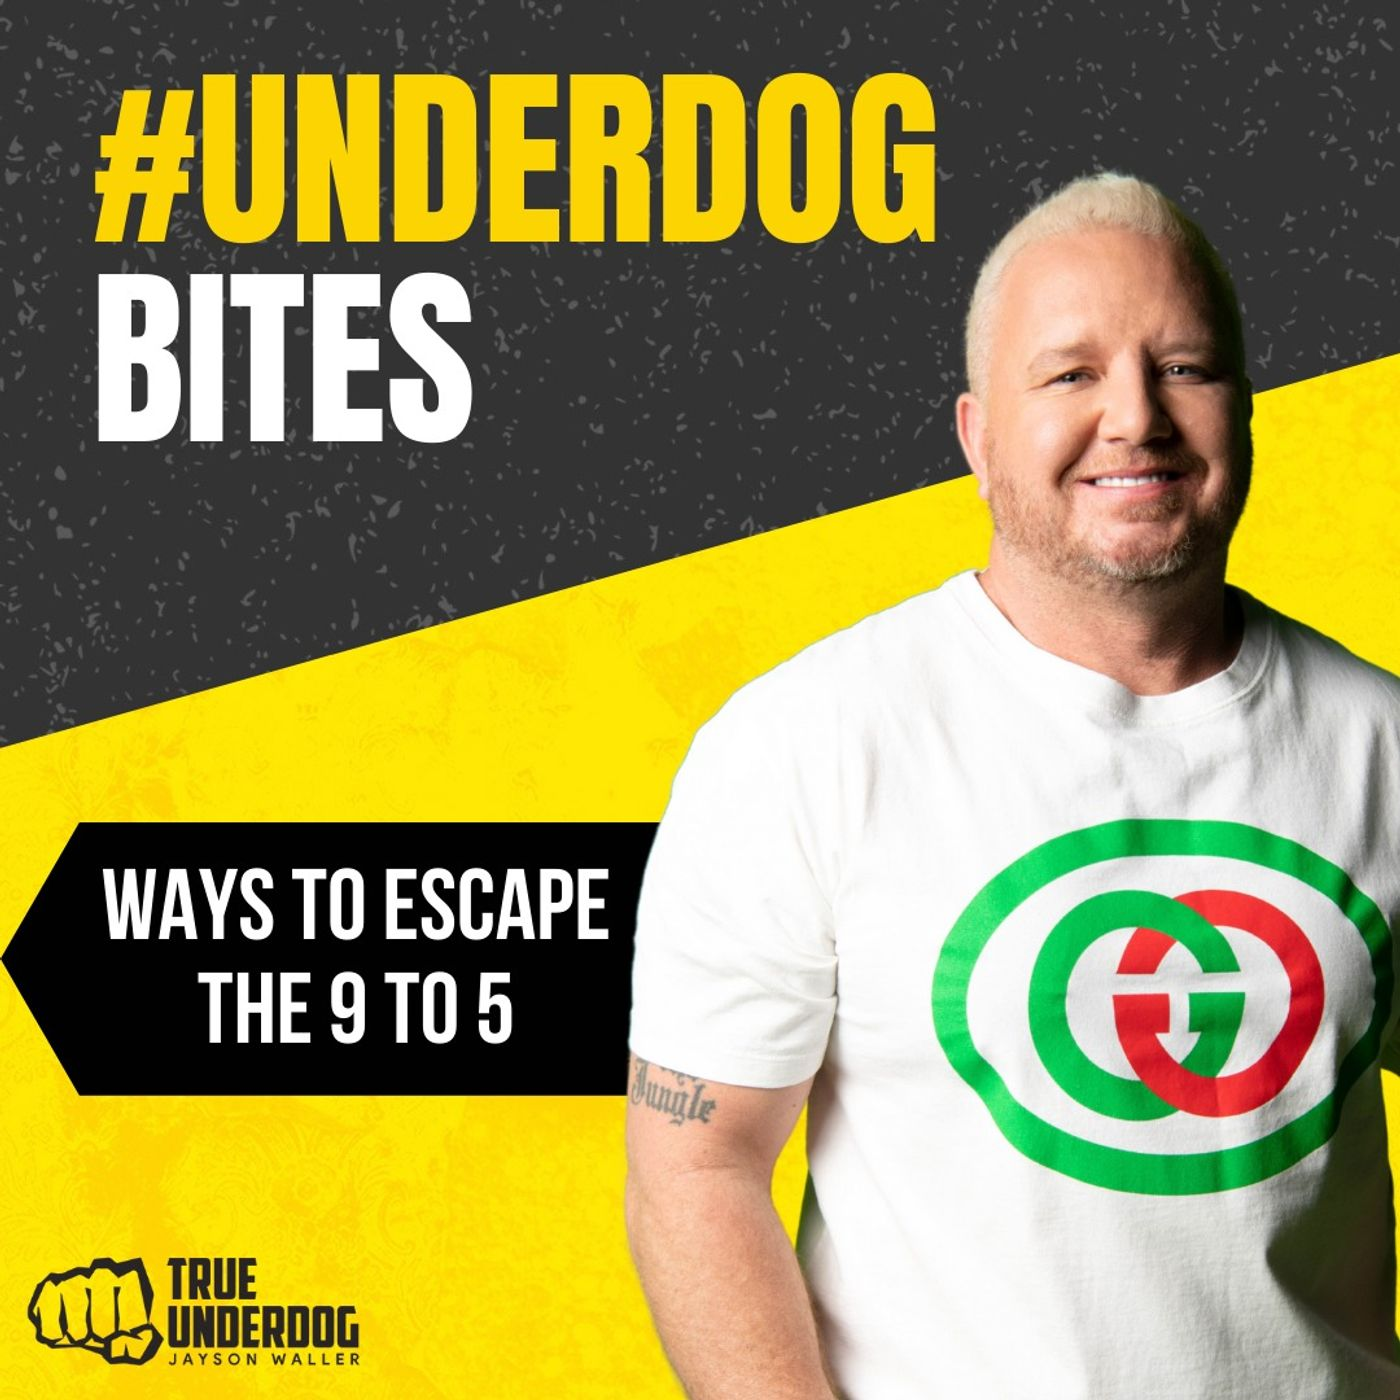 #UnderdogBites: Ways to Escape the 9 to 5 with Jayson Waller